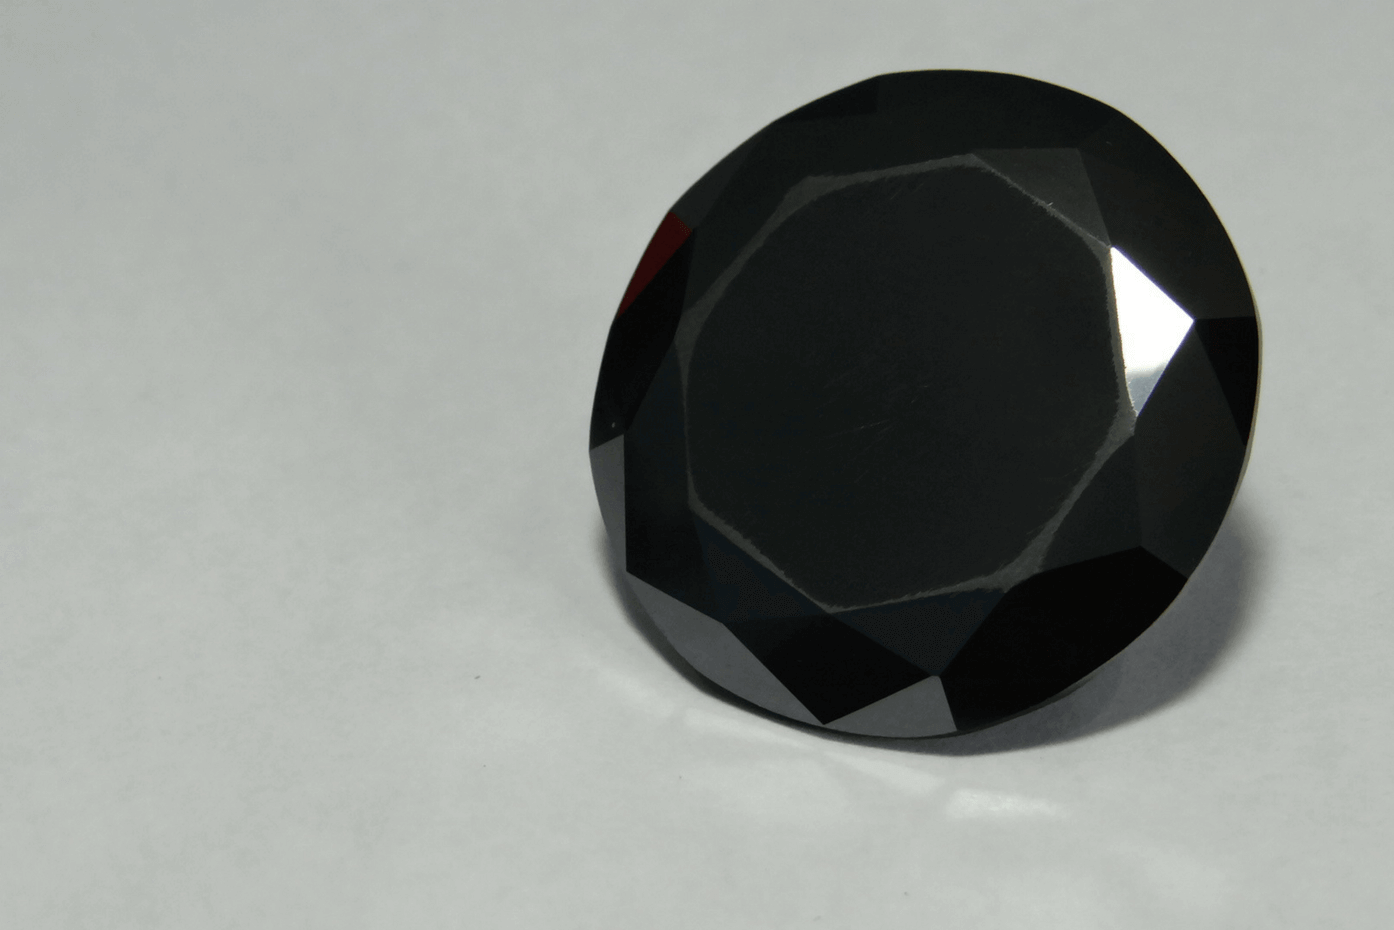 """The """"Shaan-e-Kolta"""" is a rare black diamond with a carat weight of 121.32. It currently resides in India. Photo credit: Prem Singh/CC 4.0."""